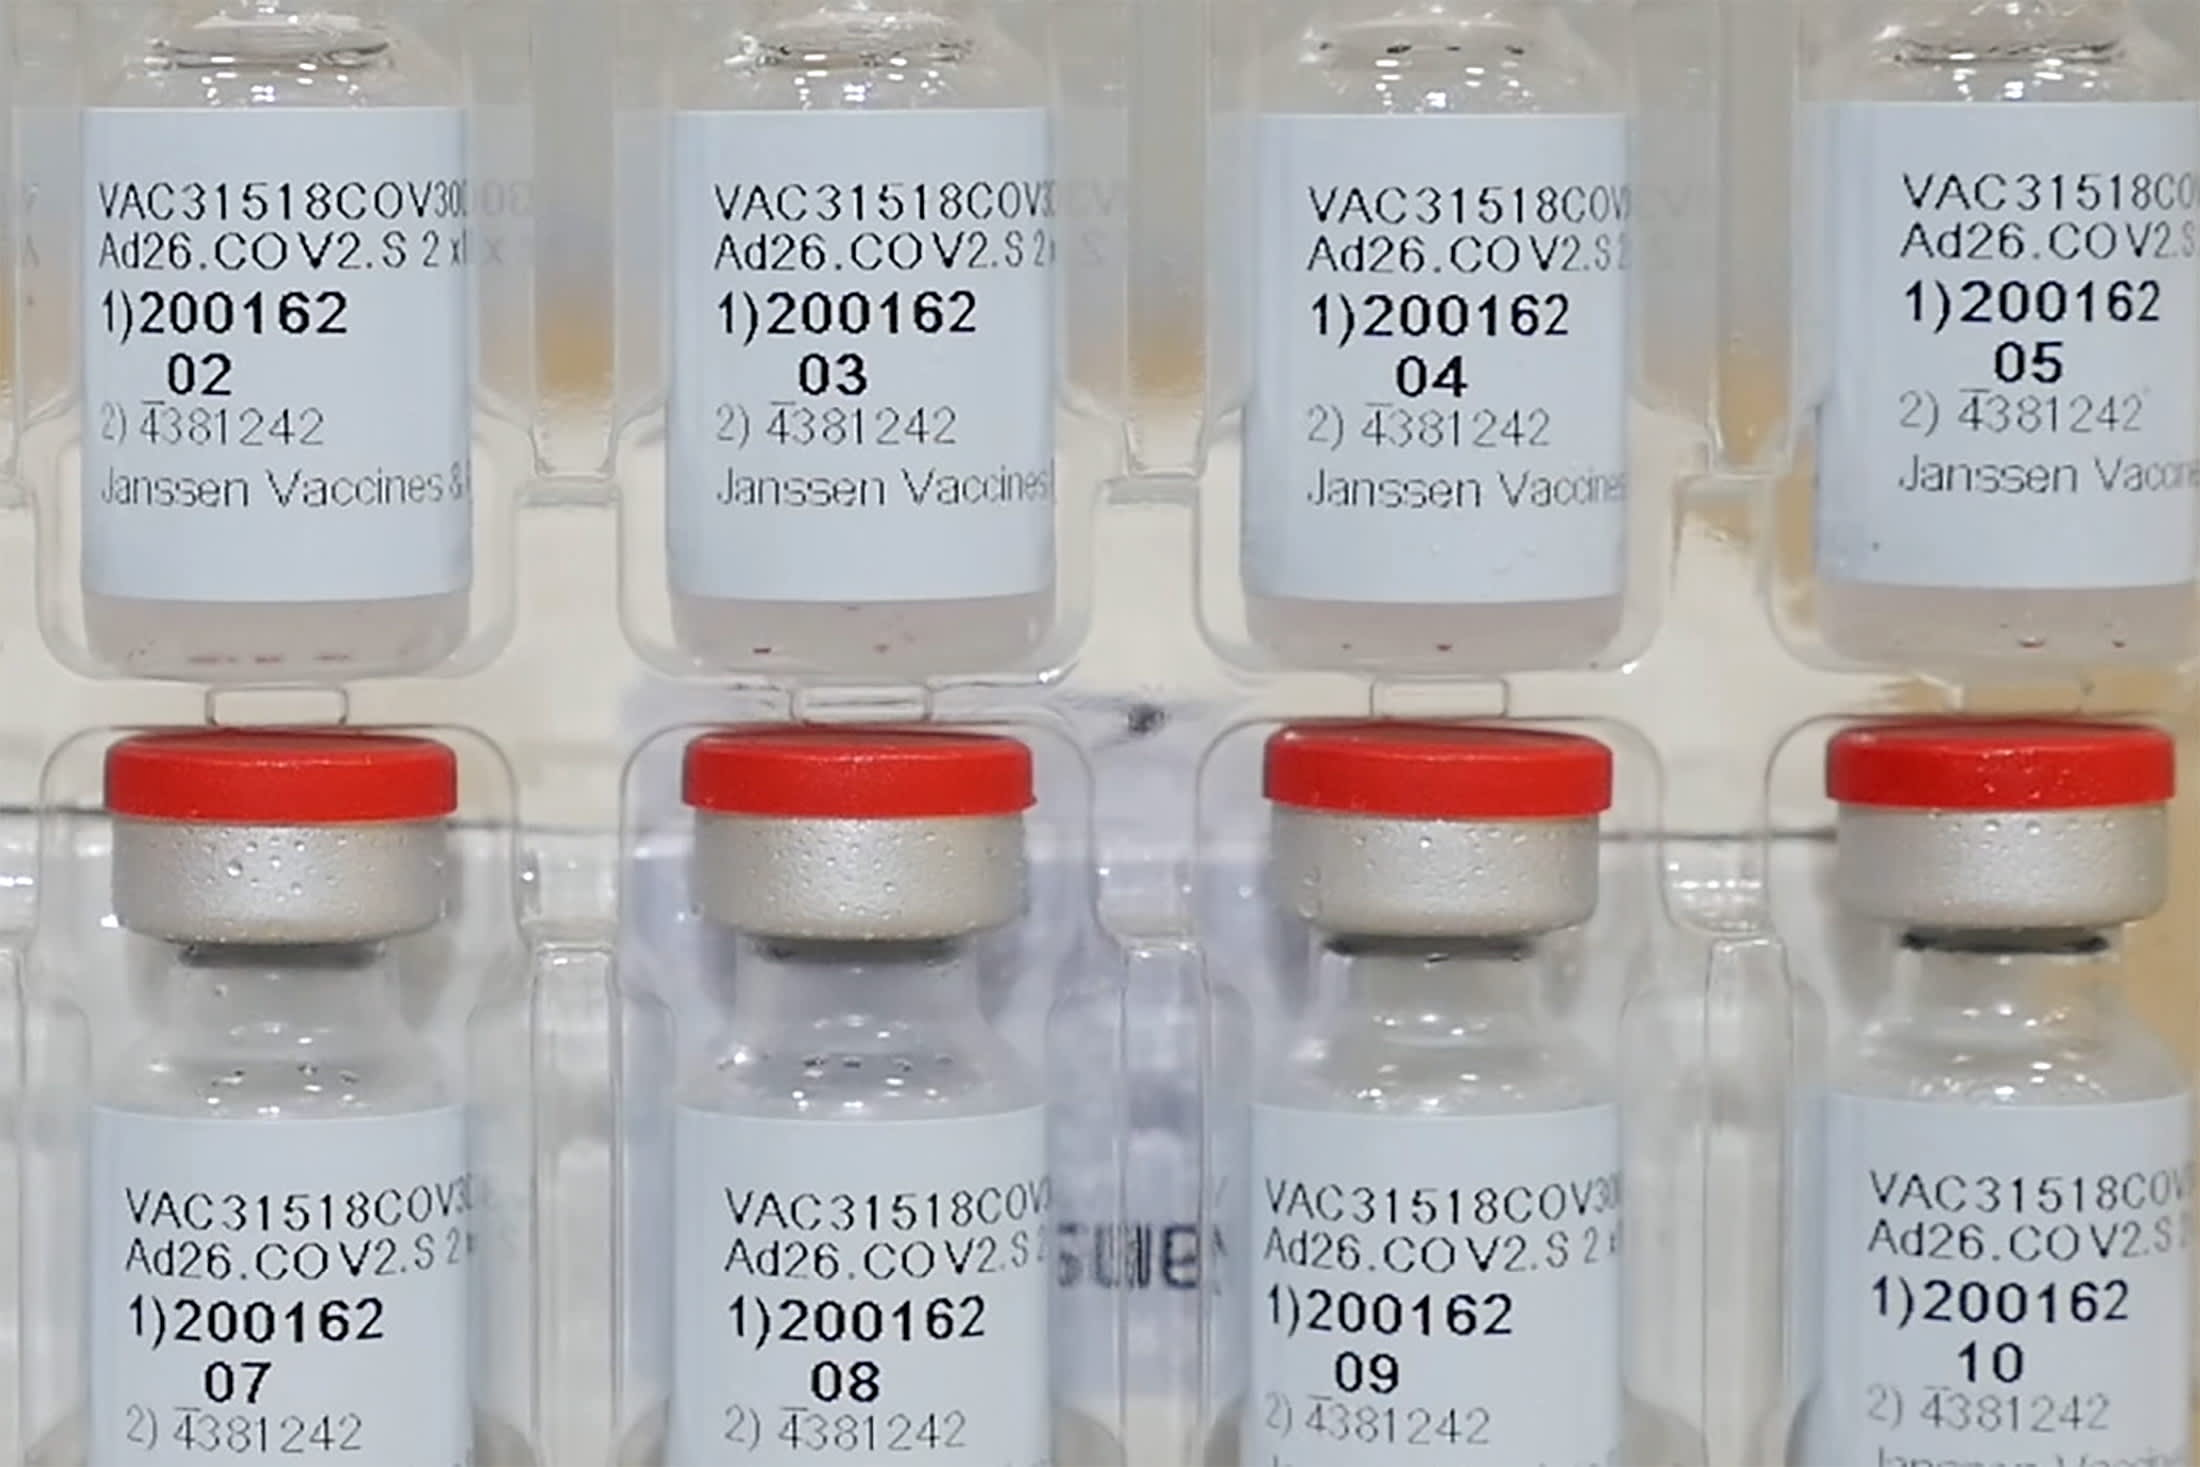 Detroit mayor rejects initial J&J vaccine shipment, saying Pfizer and Moderna are 'the best'